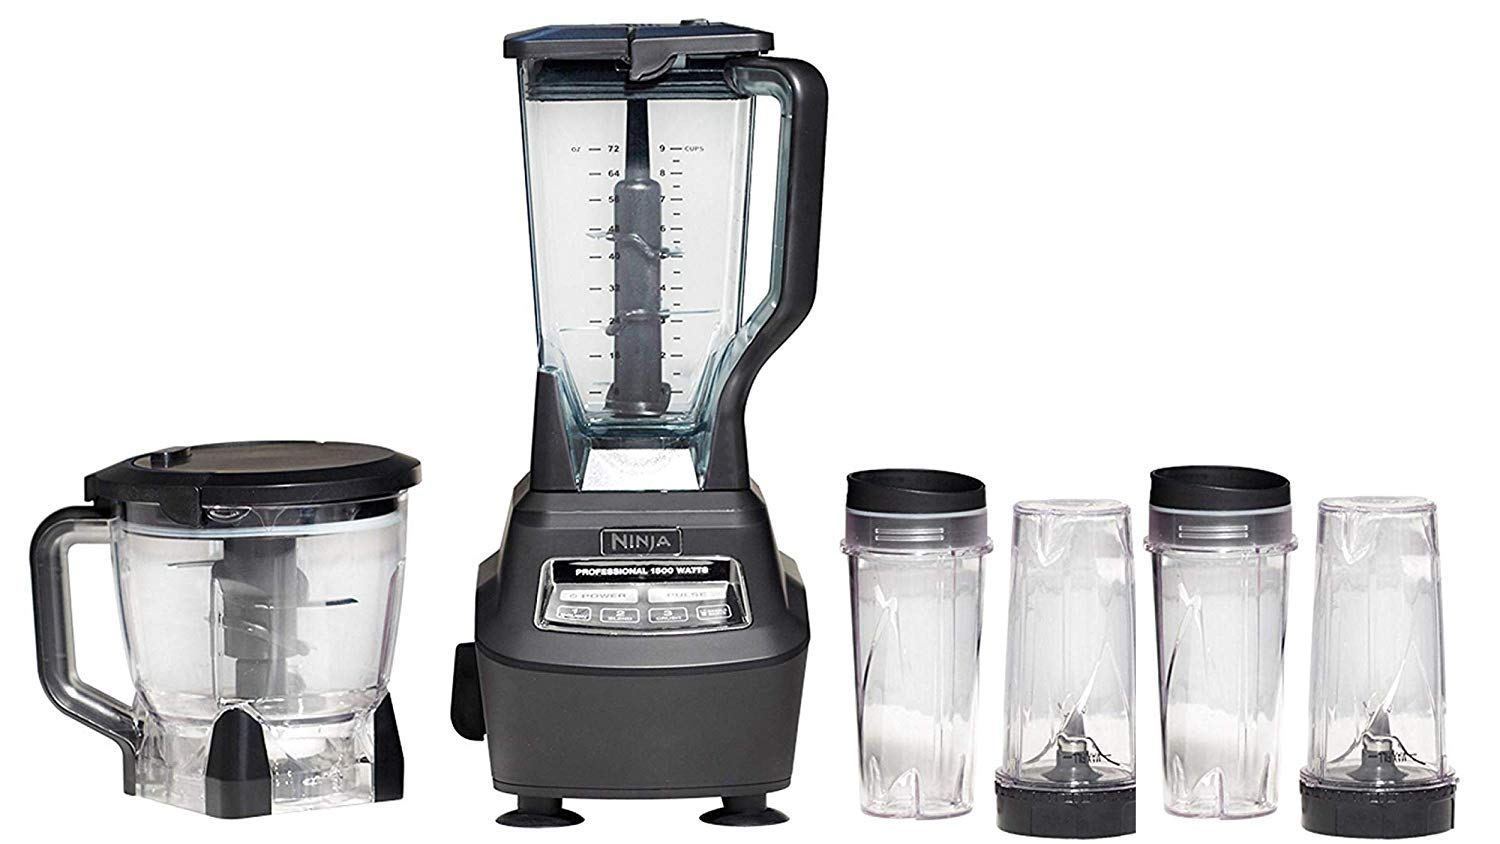 Ninja Mega Kitchen System (BL770) Blender/Food Processor with 1500W Auto-iQ Base